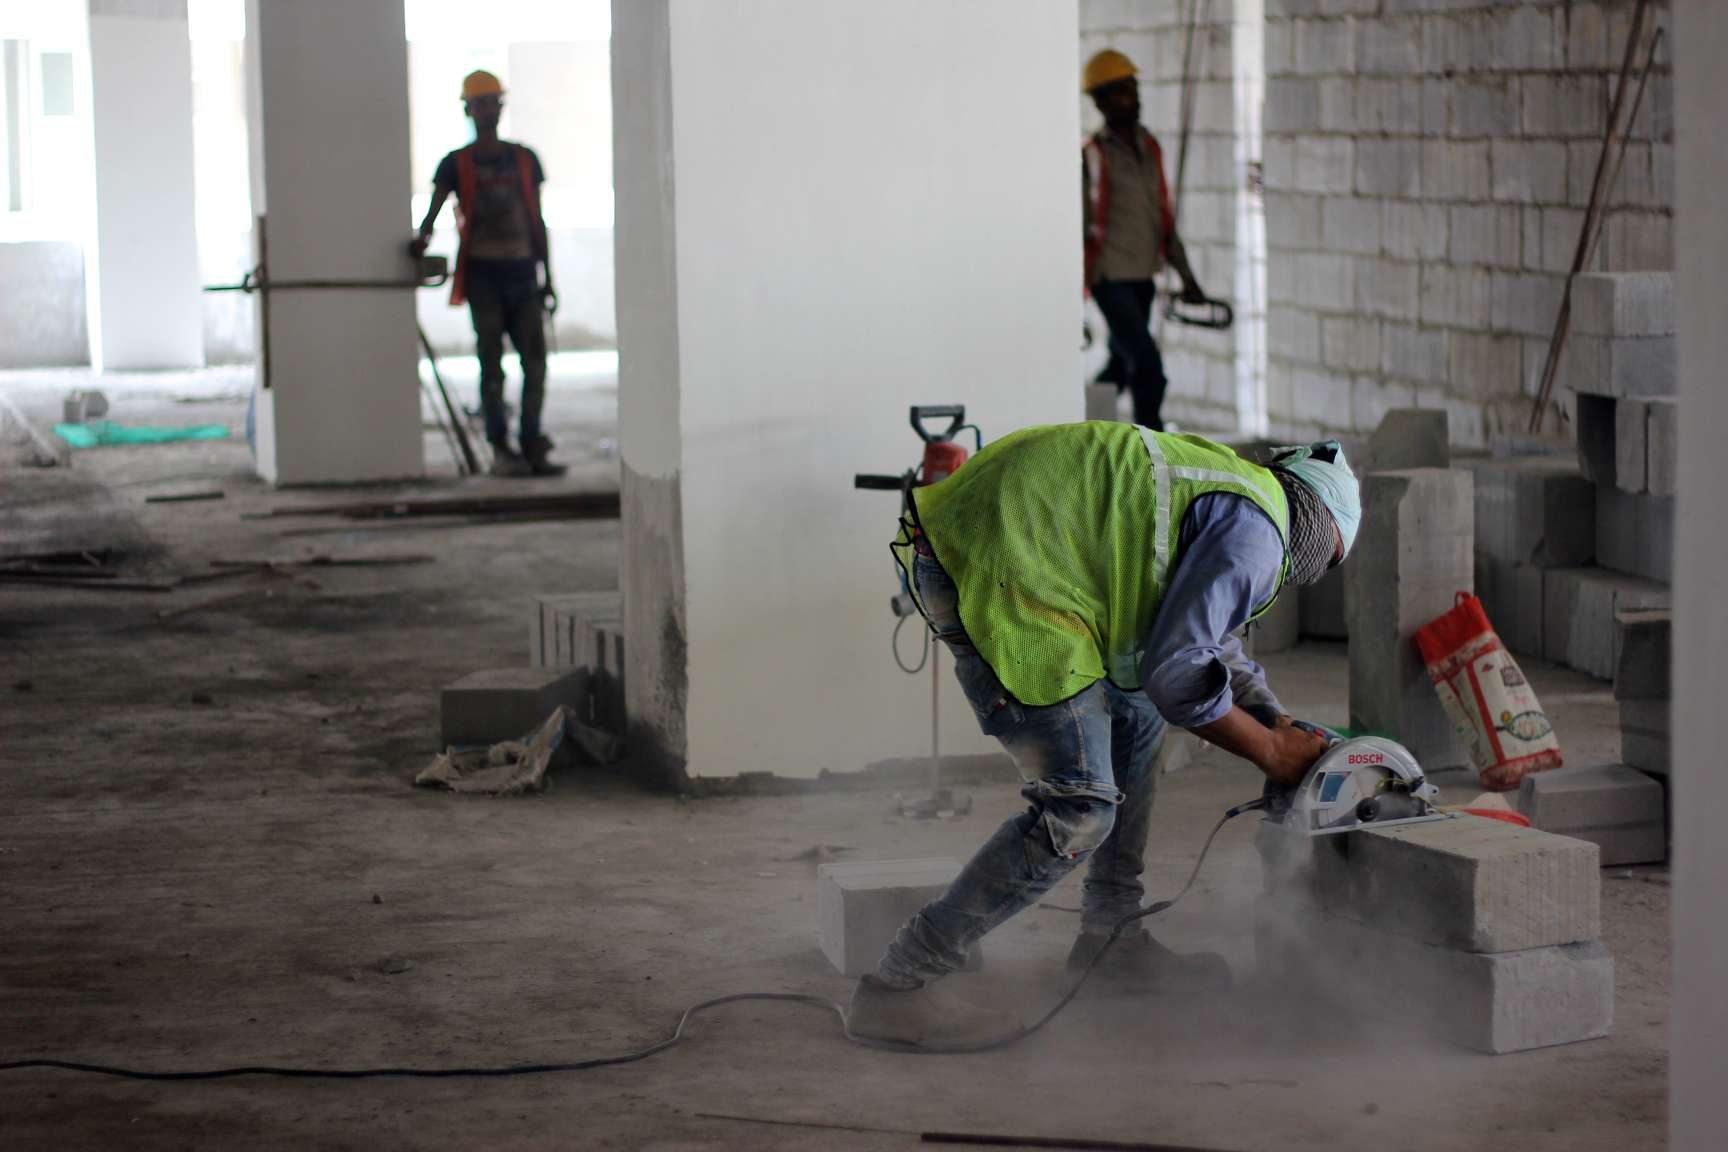 a construction worker working on an indoor worksite-construction workers welfare